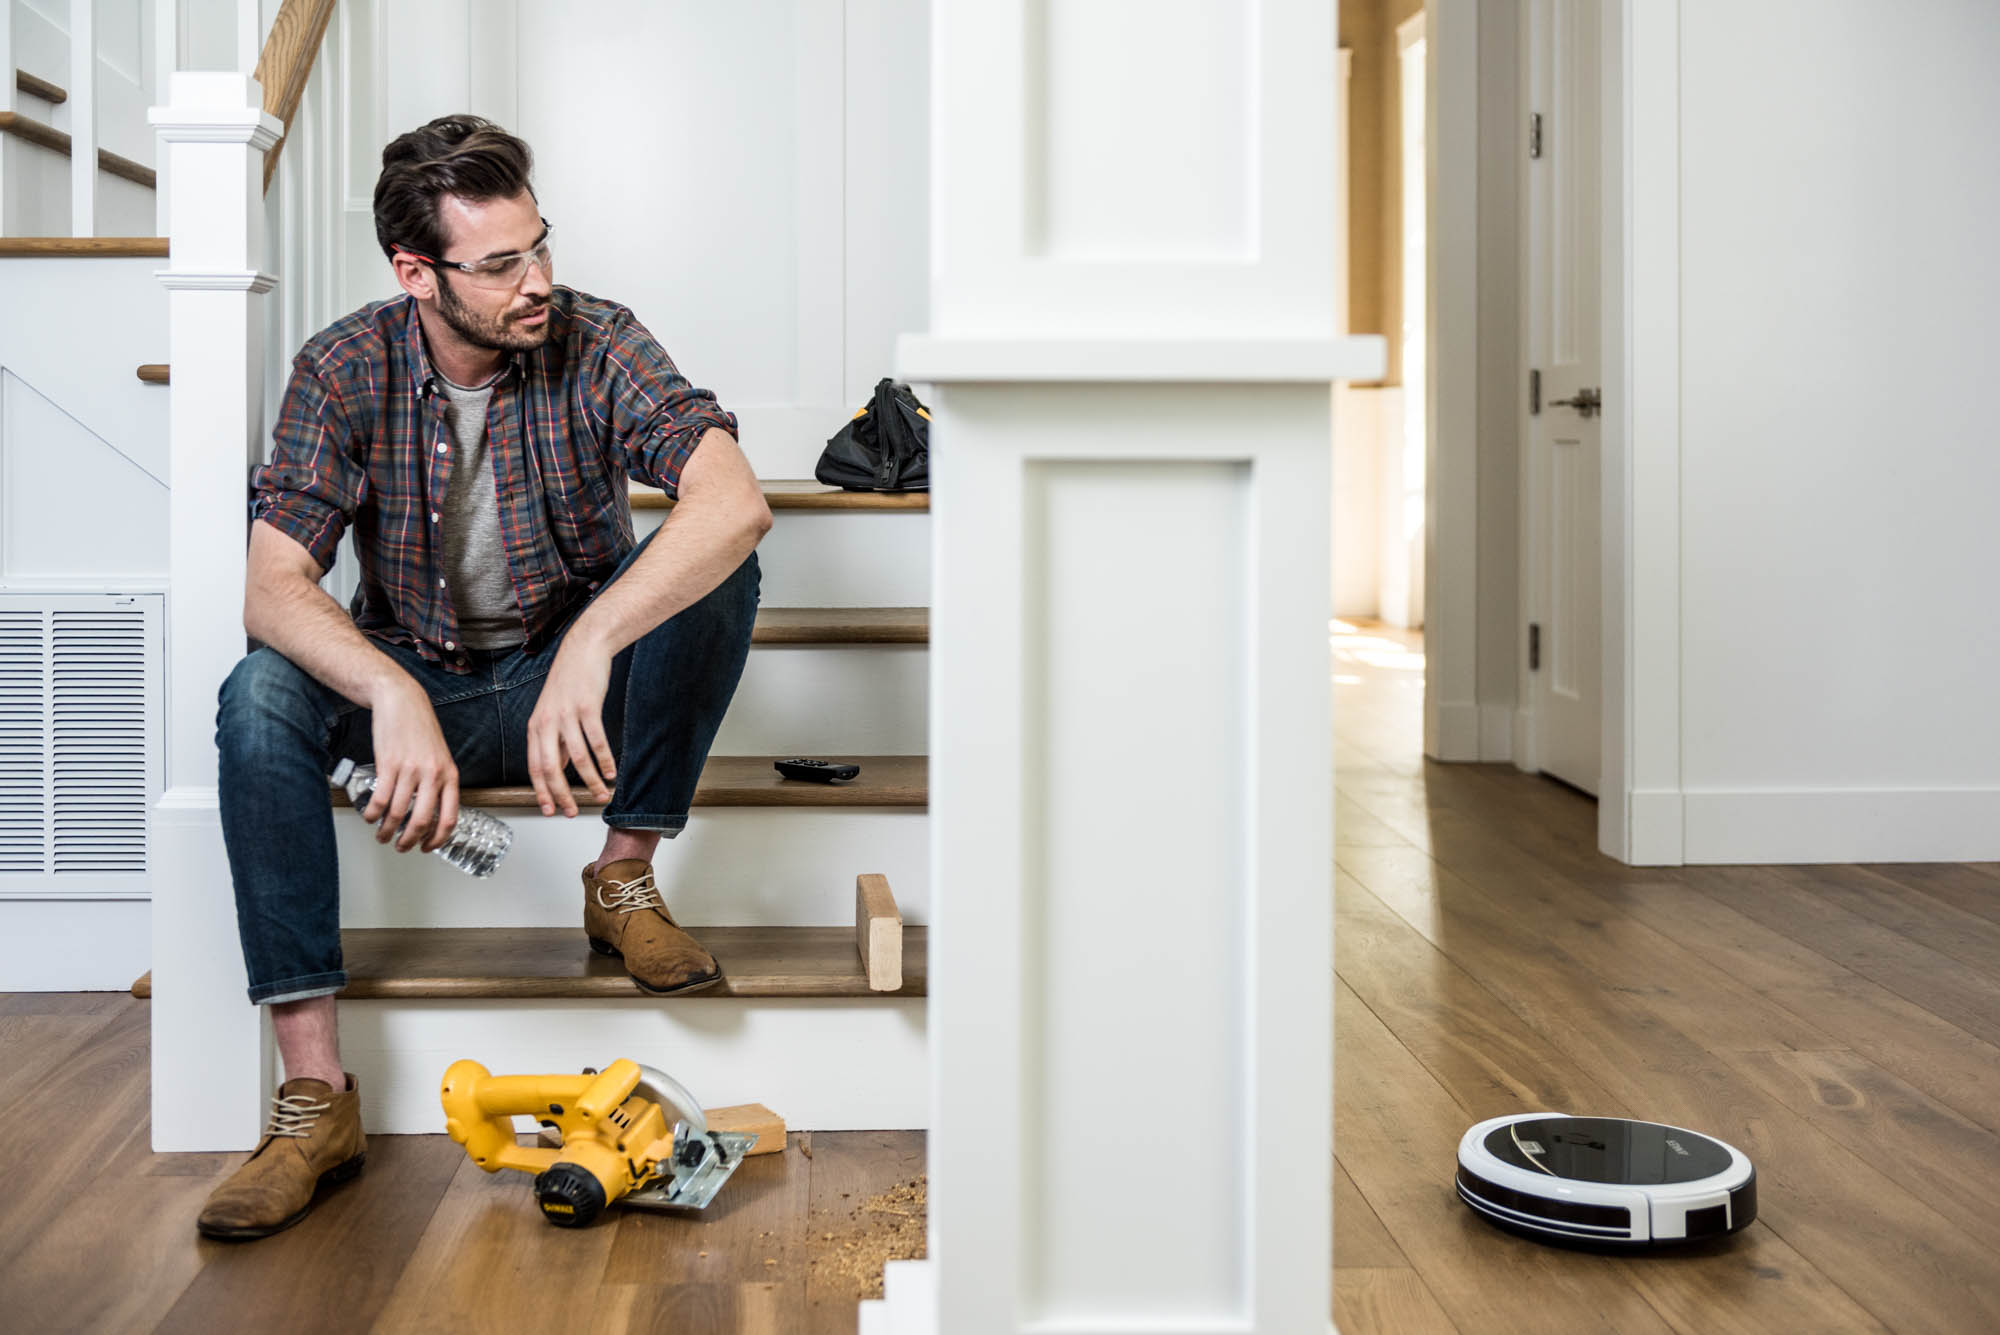 Man sitting on stairs with tools and a vacuum